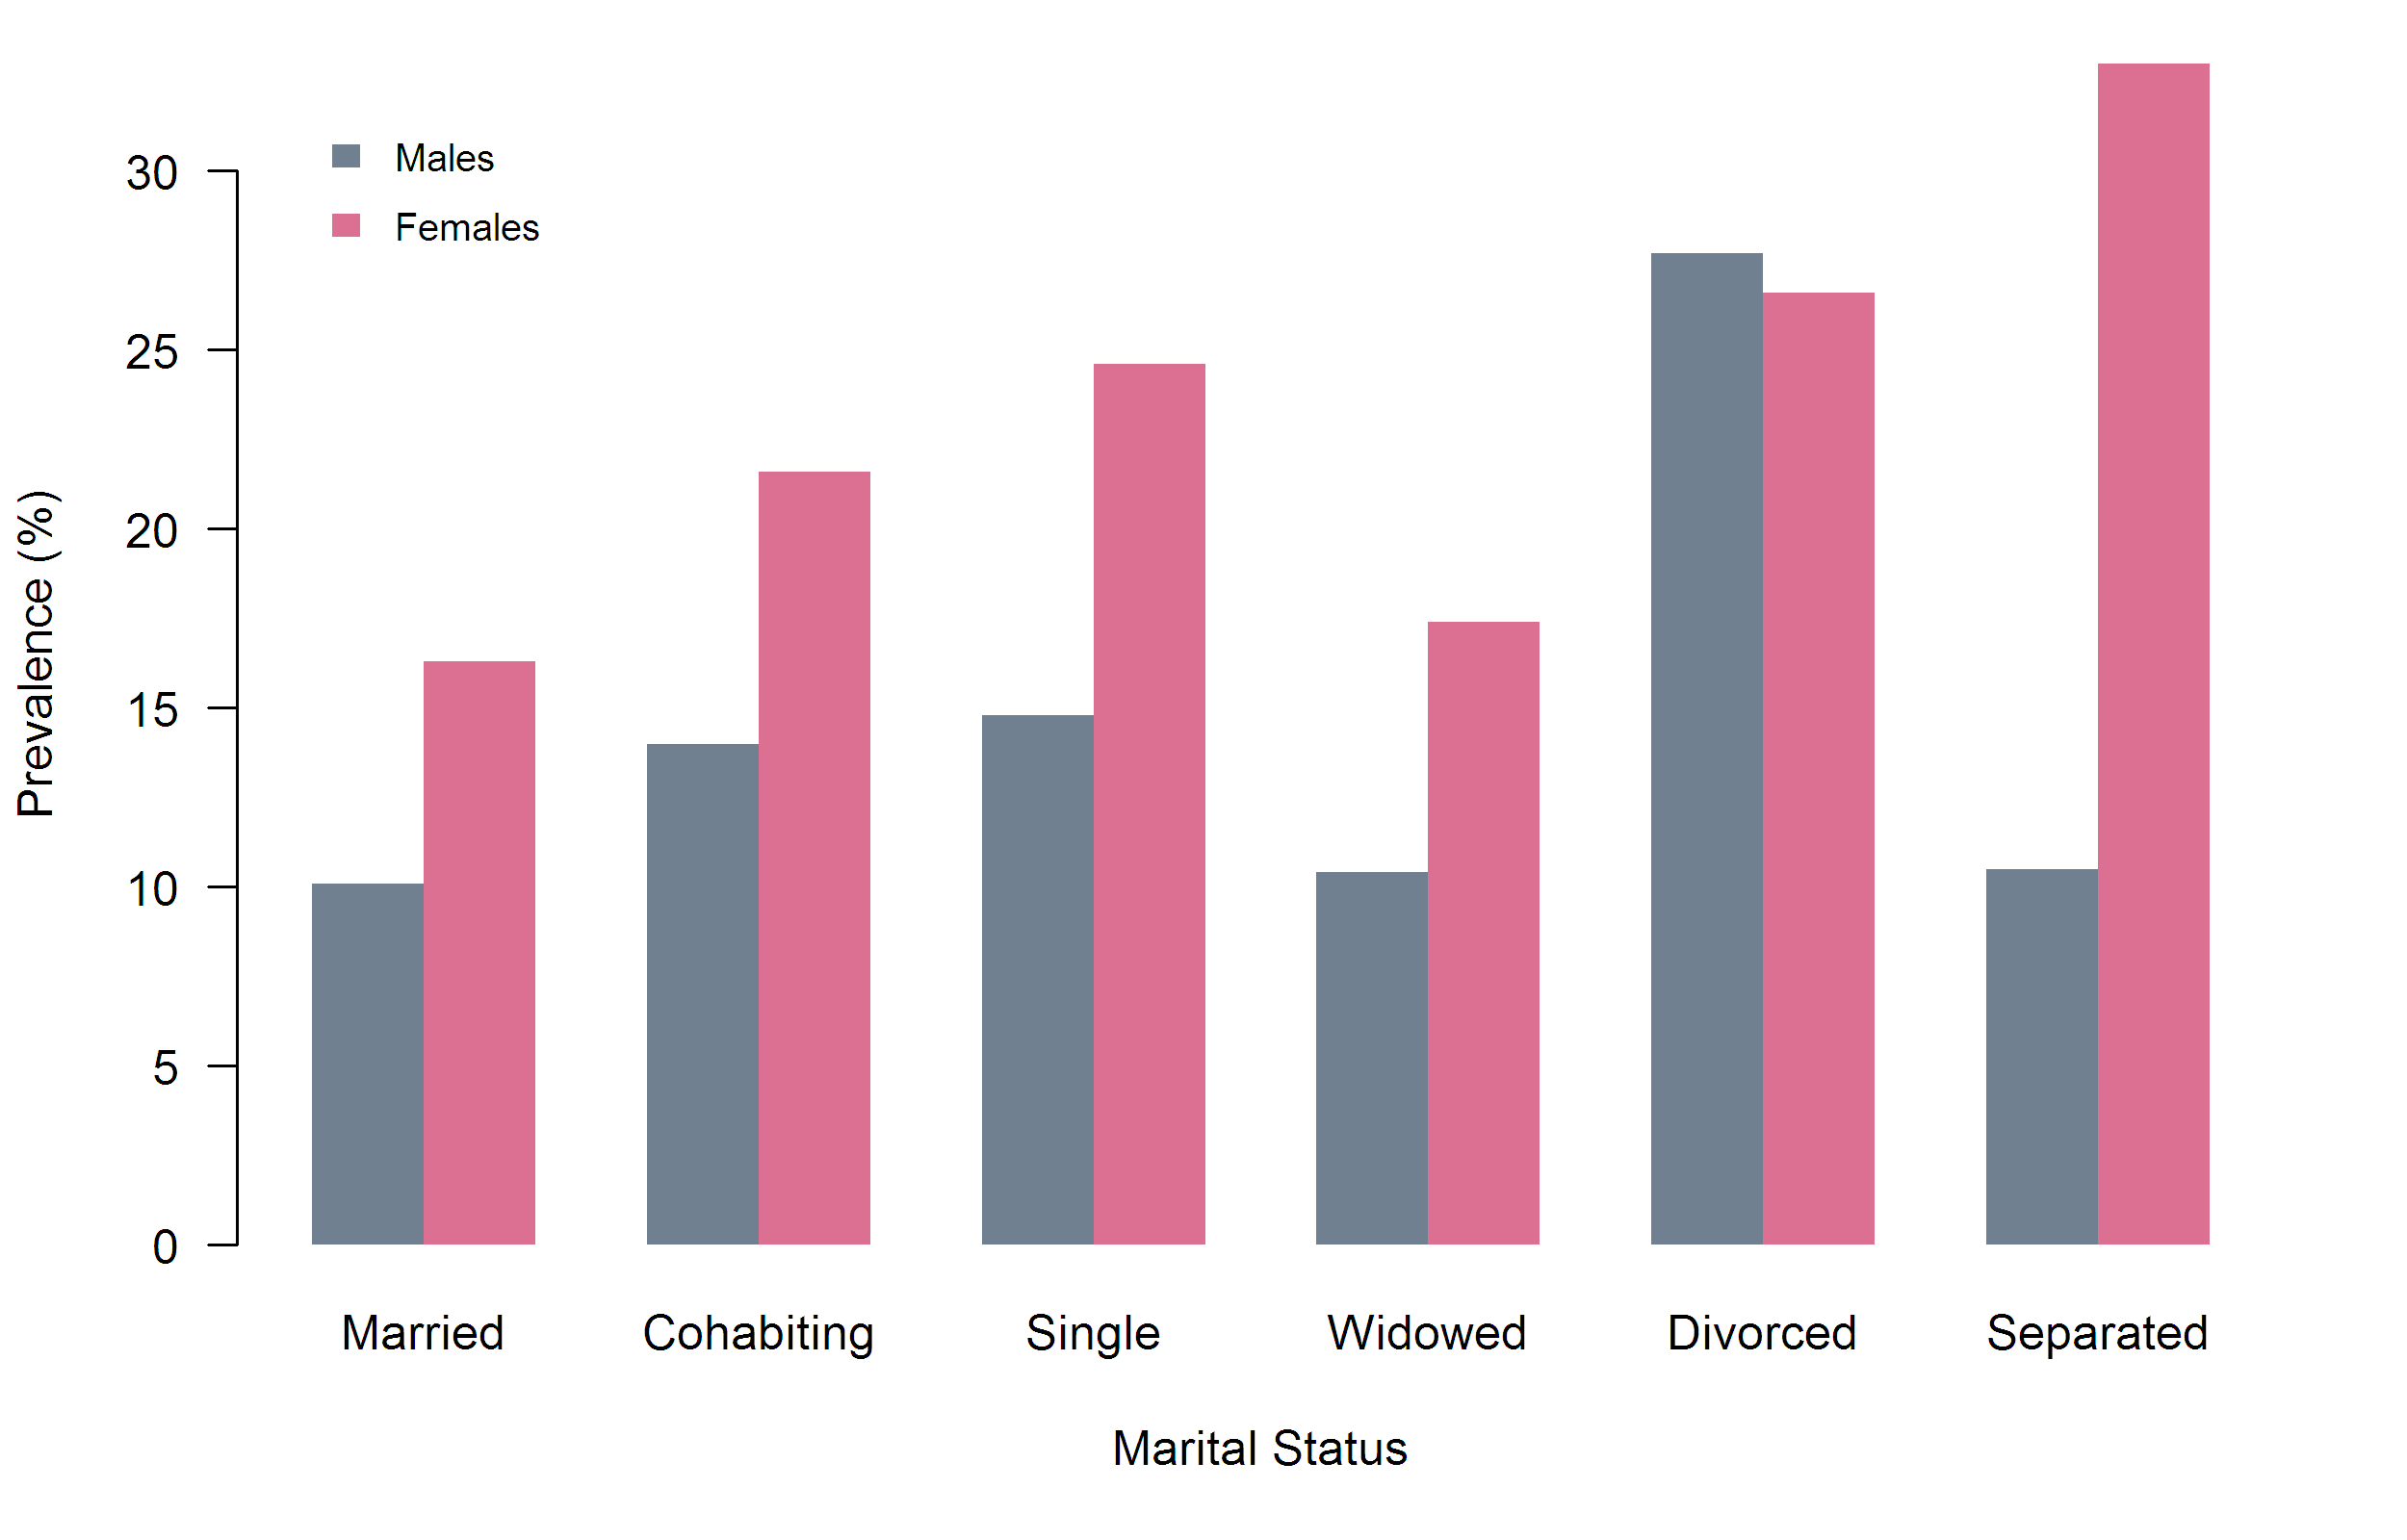 Figure 4: Prevalence of all common mental disorders in England PMS 2007, by marital status and gender.